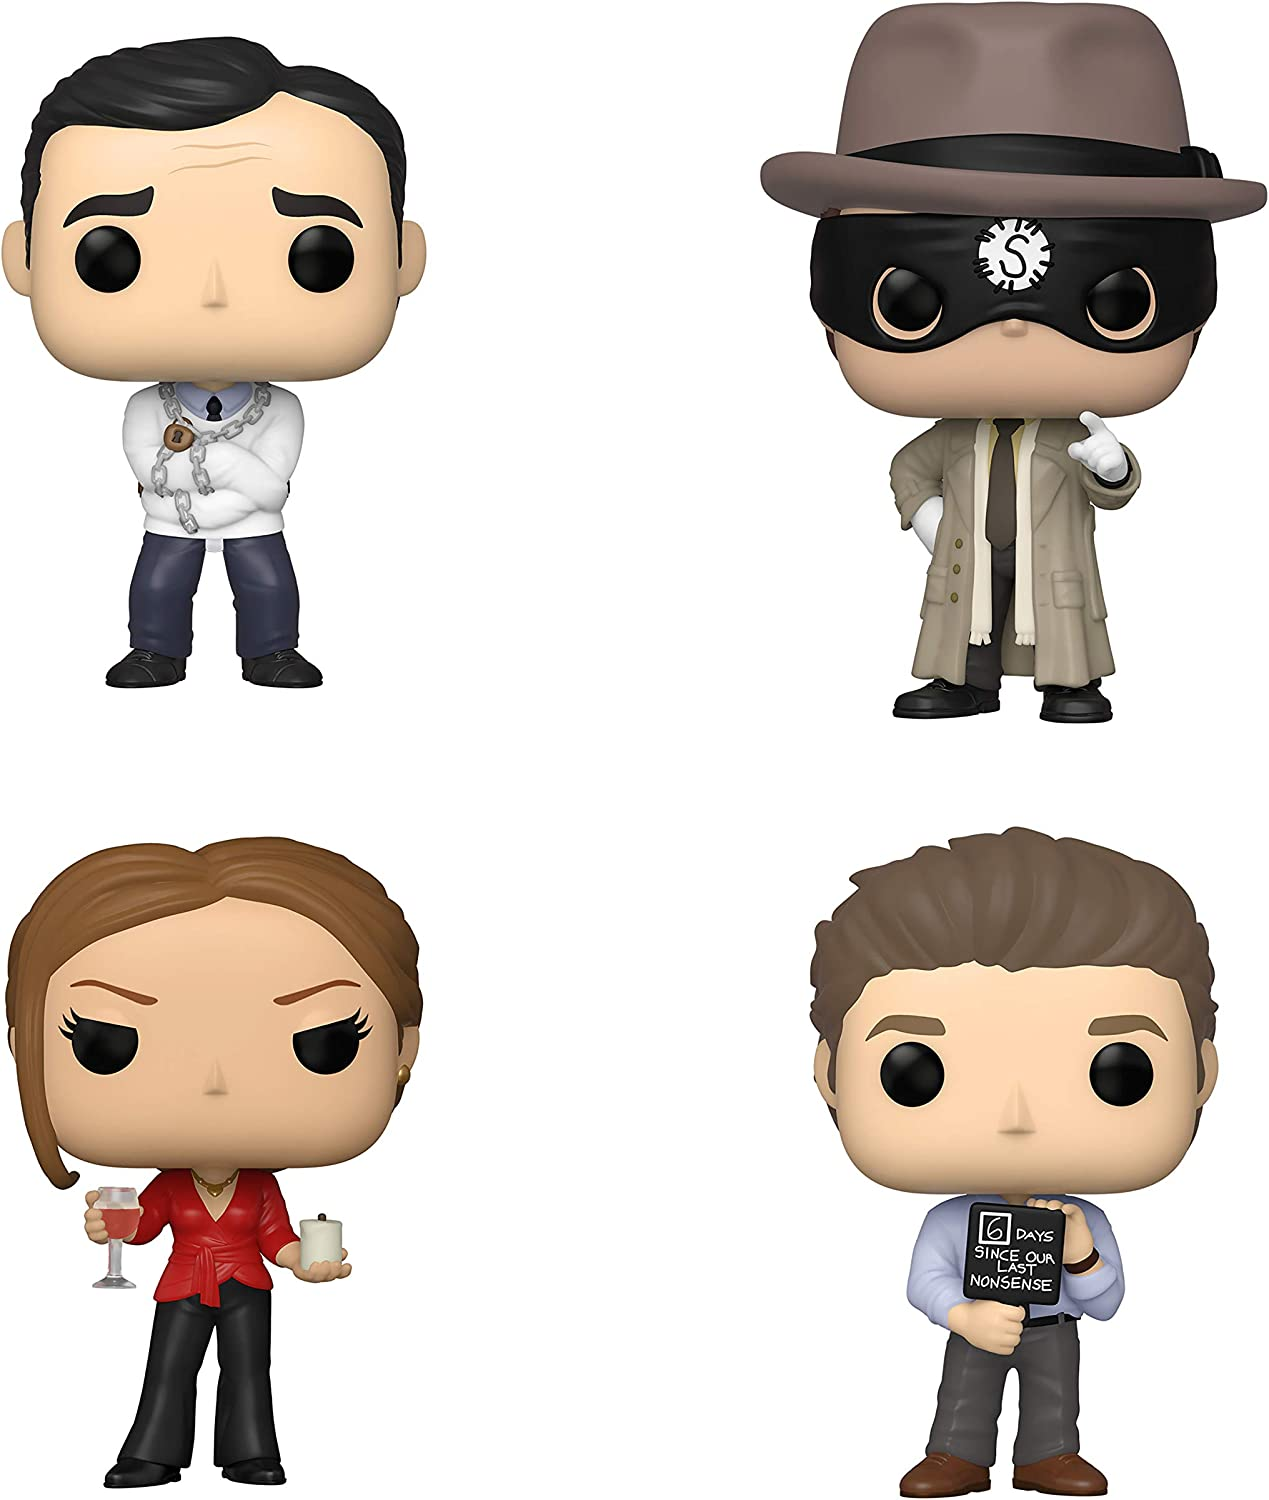 Funko TV: POP! The Office Collectors Set 2 - Straitjack Michael, Dwight The Strangler, Jim with Nonsense Sign, Jan with Wine & Candle